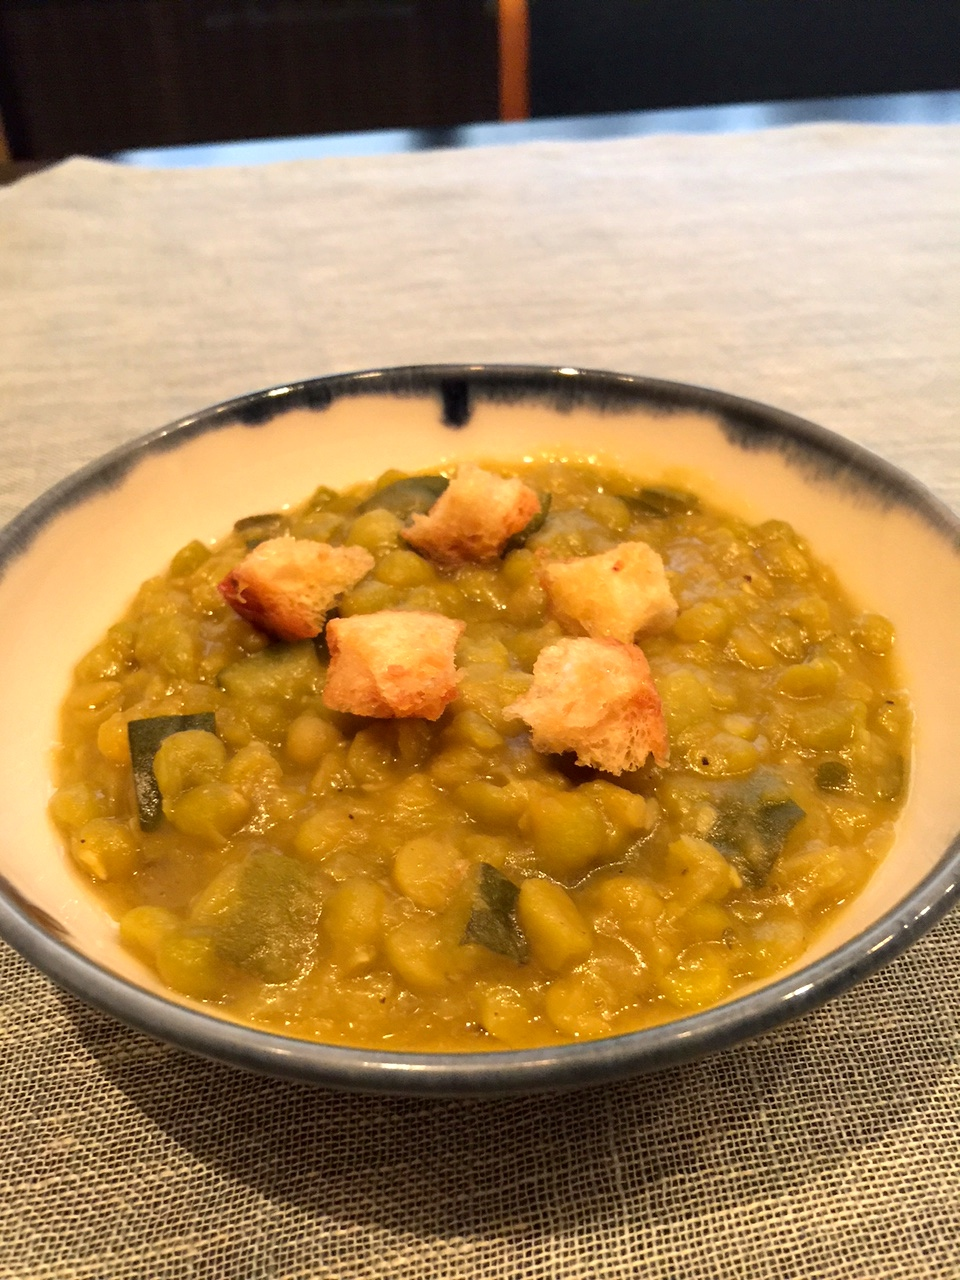 3rd plated split pea soup